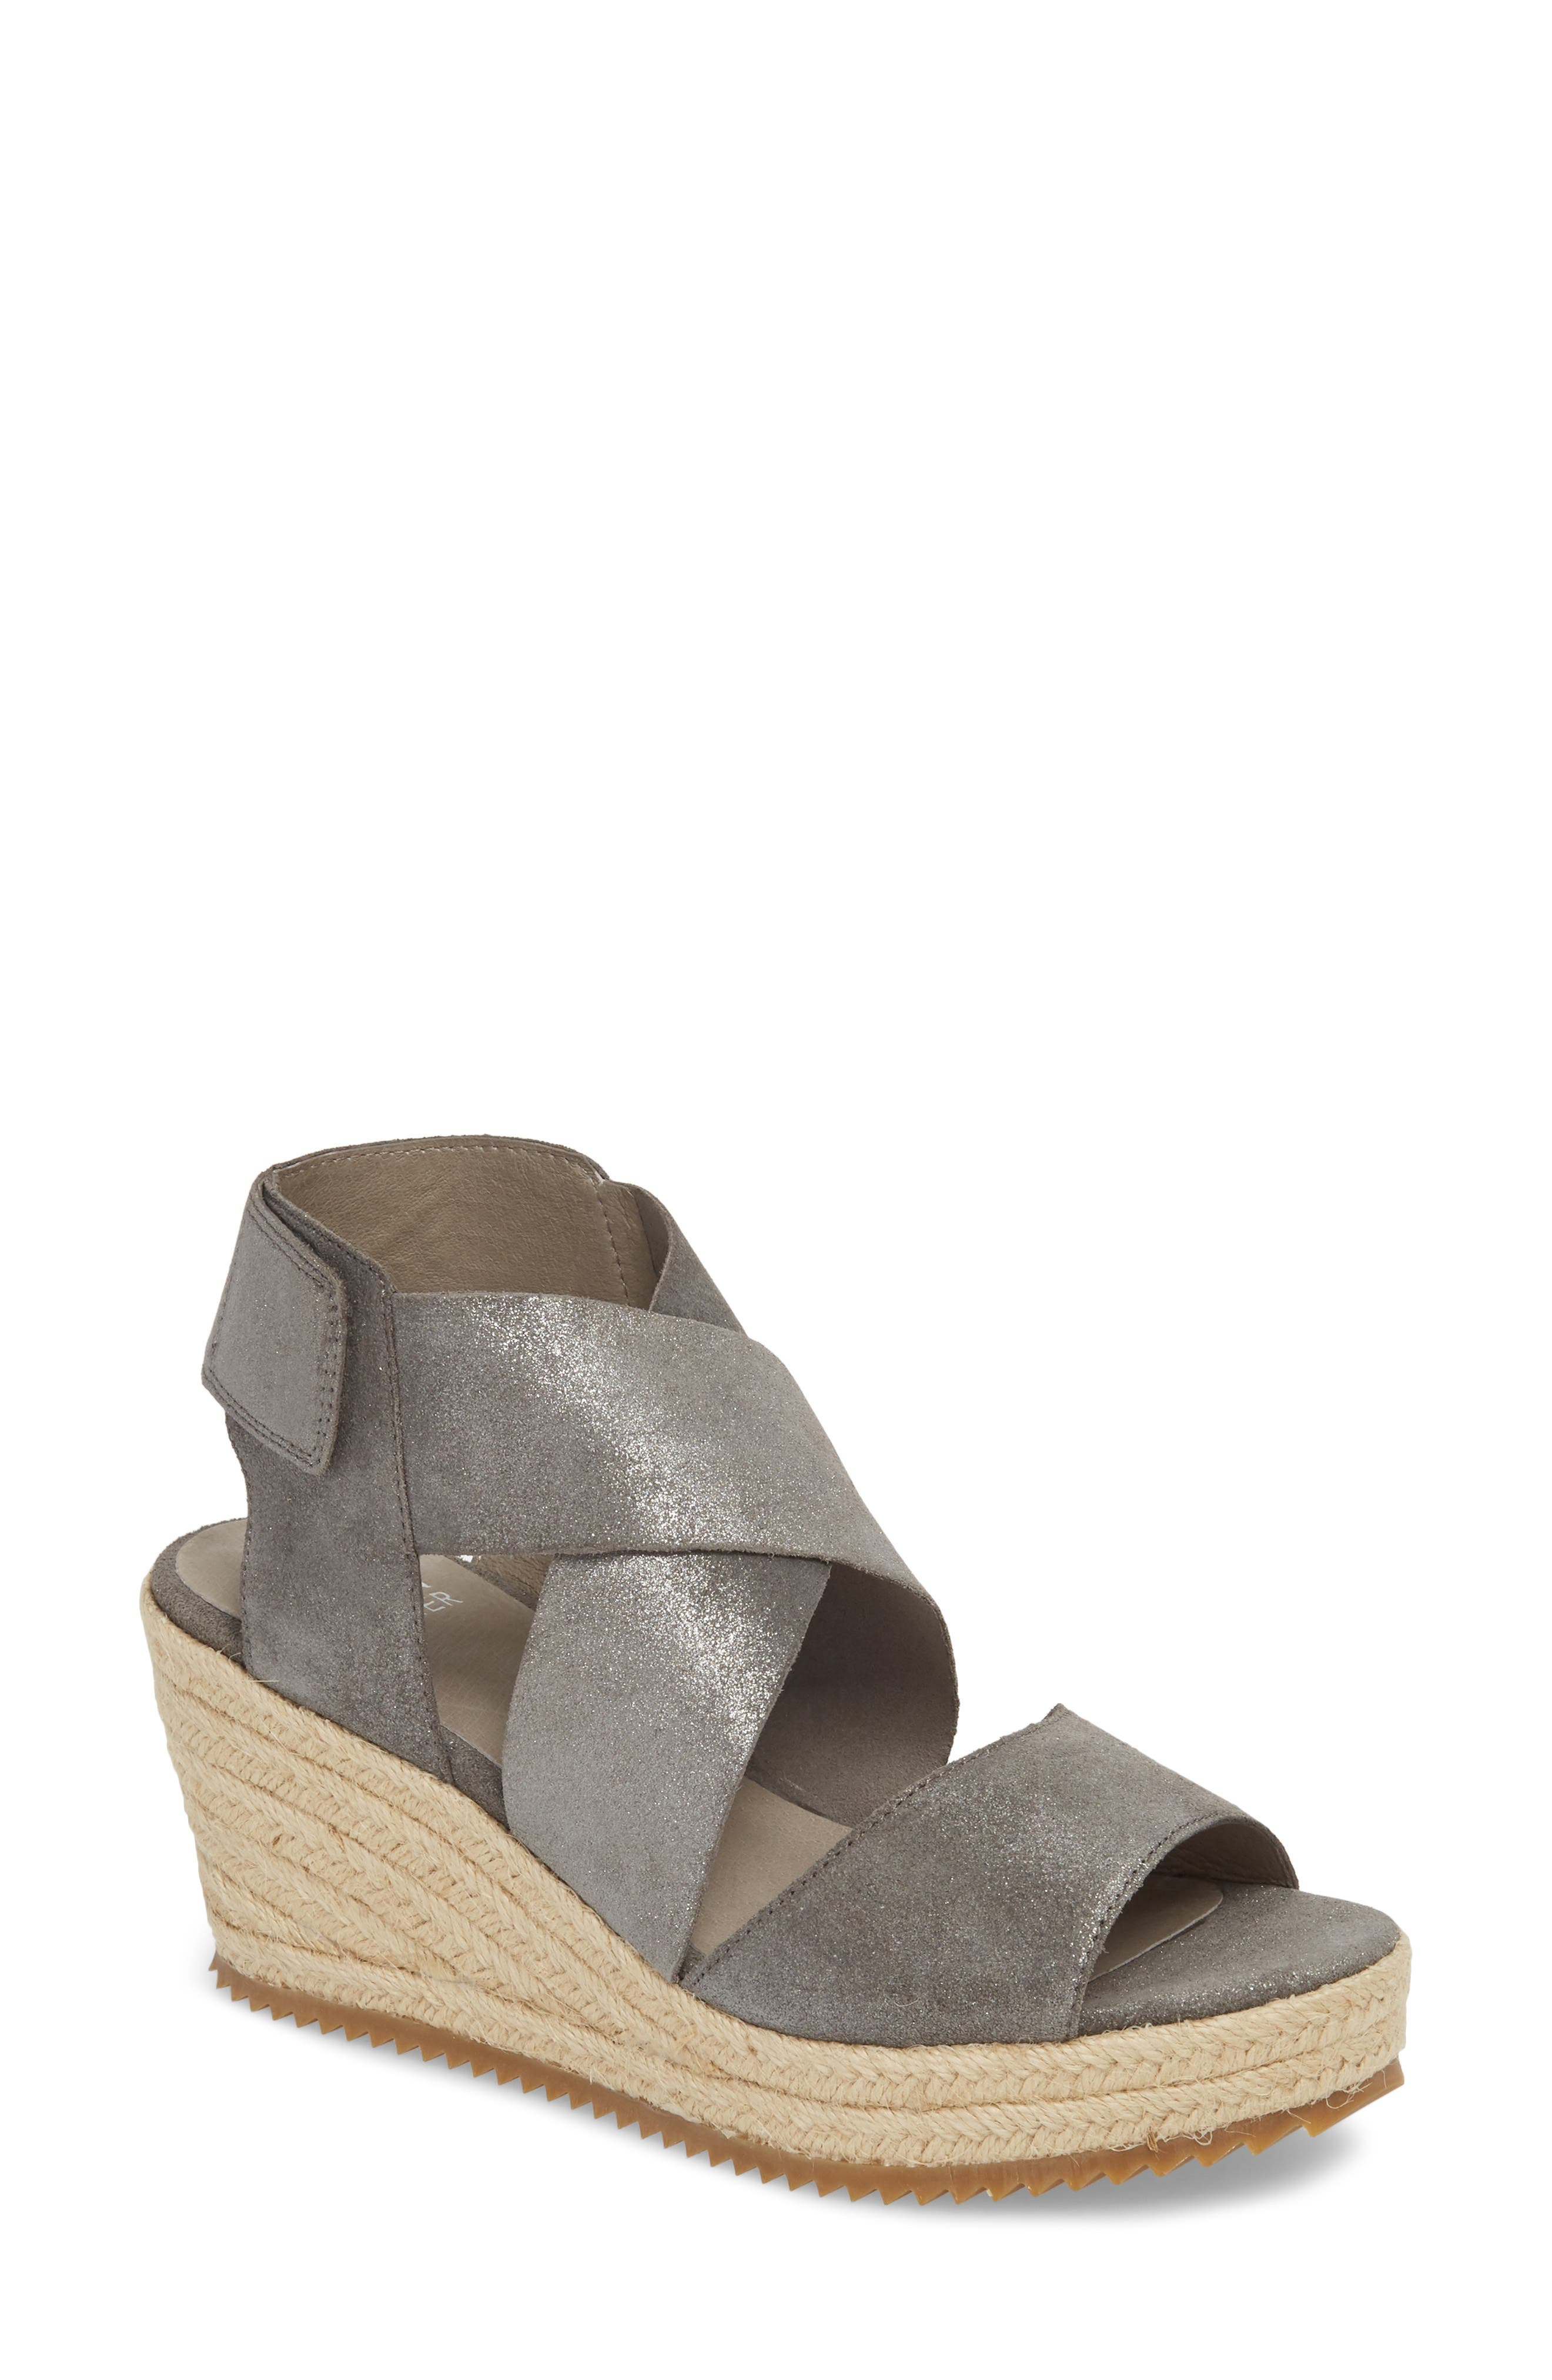 Main Image - Eileen Fisher 'Willow' Espadrille Wedge Sandal ...